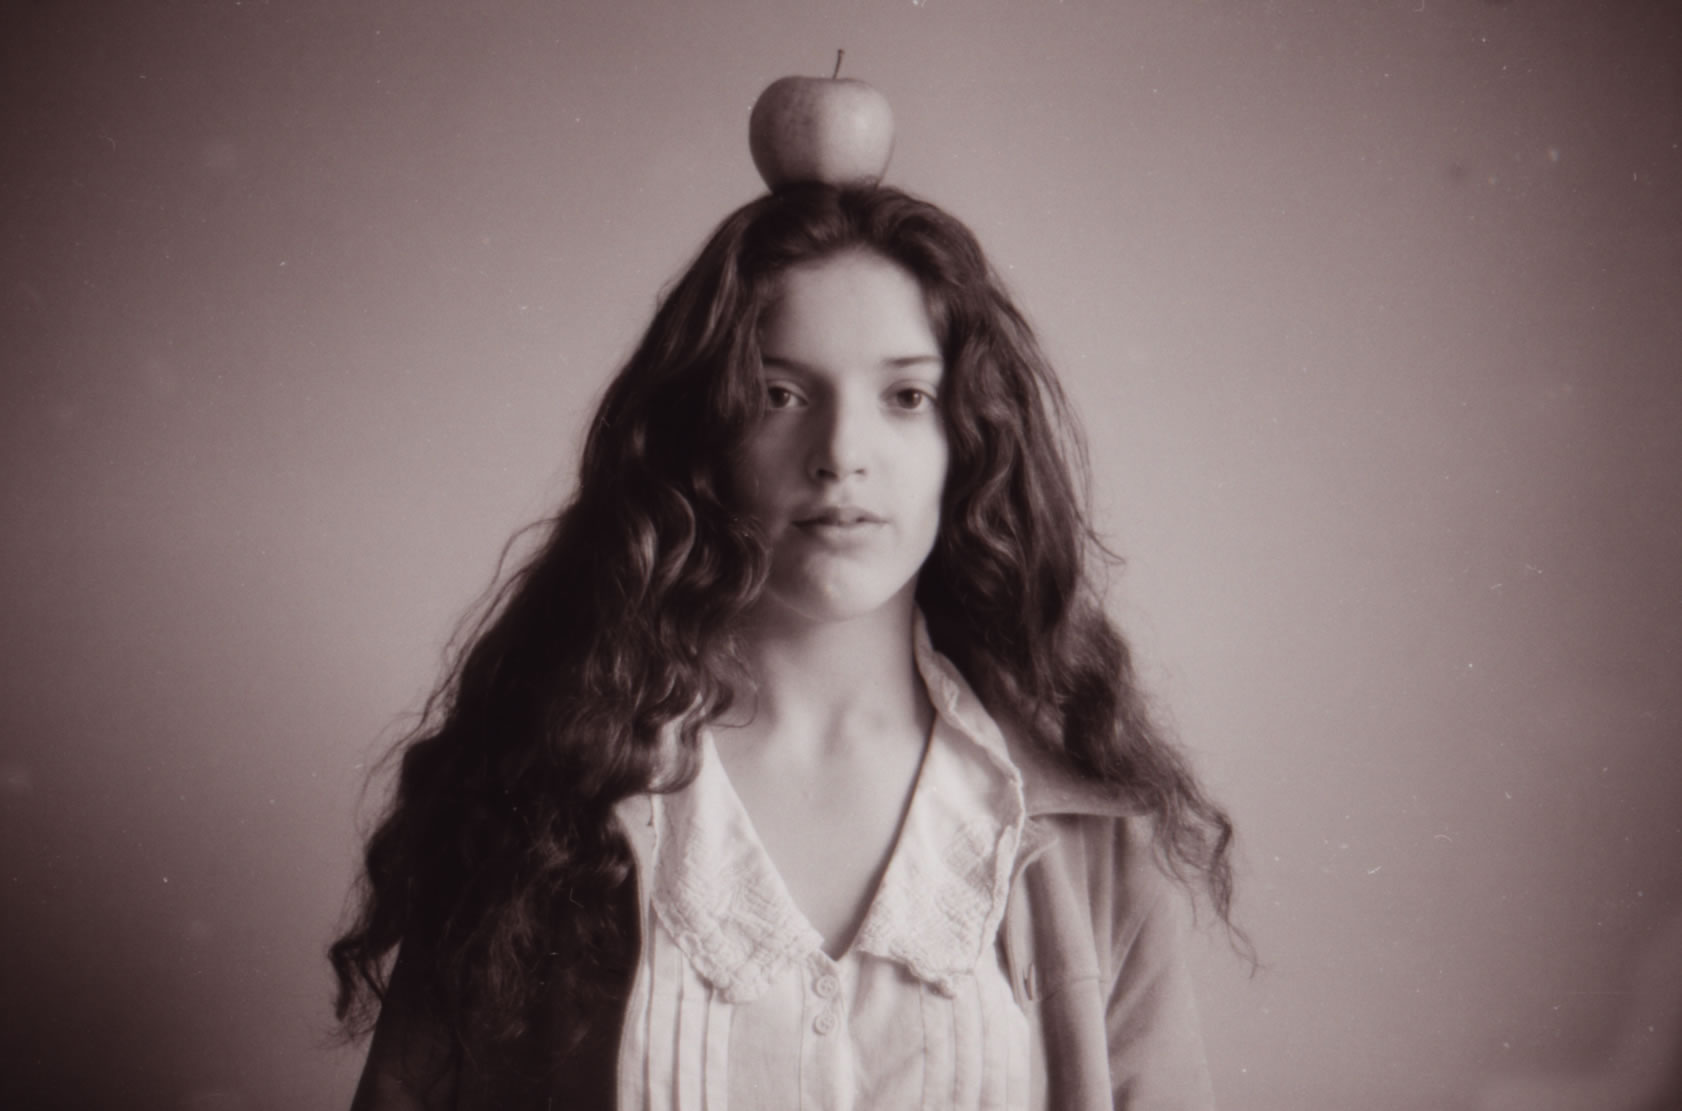 GIRL WITH APPLE ON HEAD